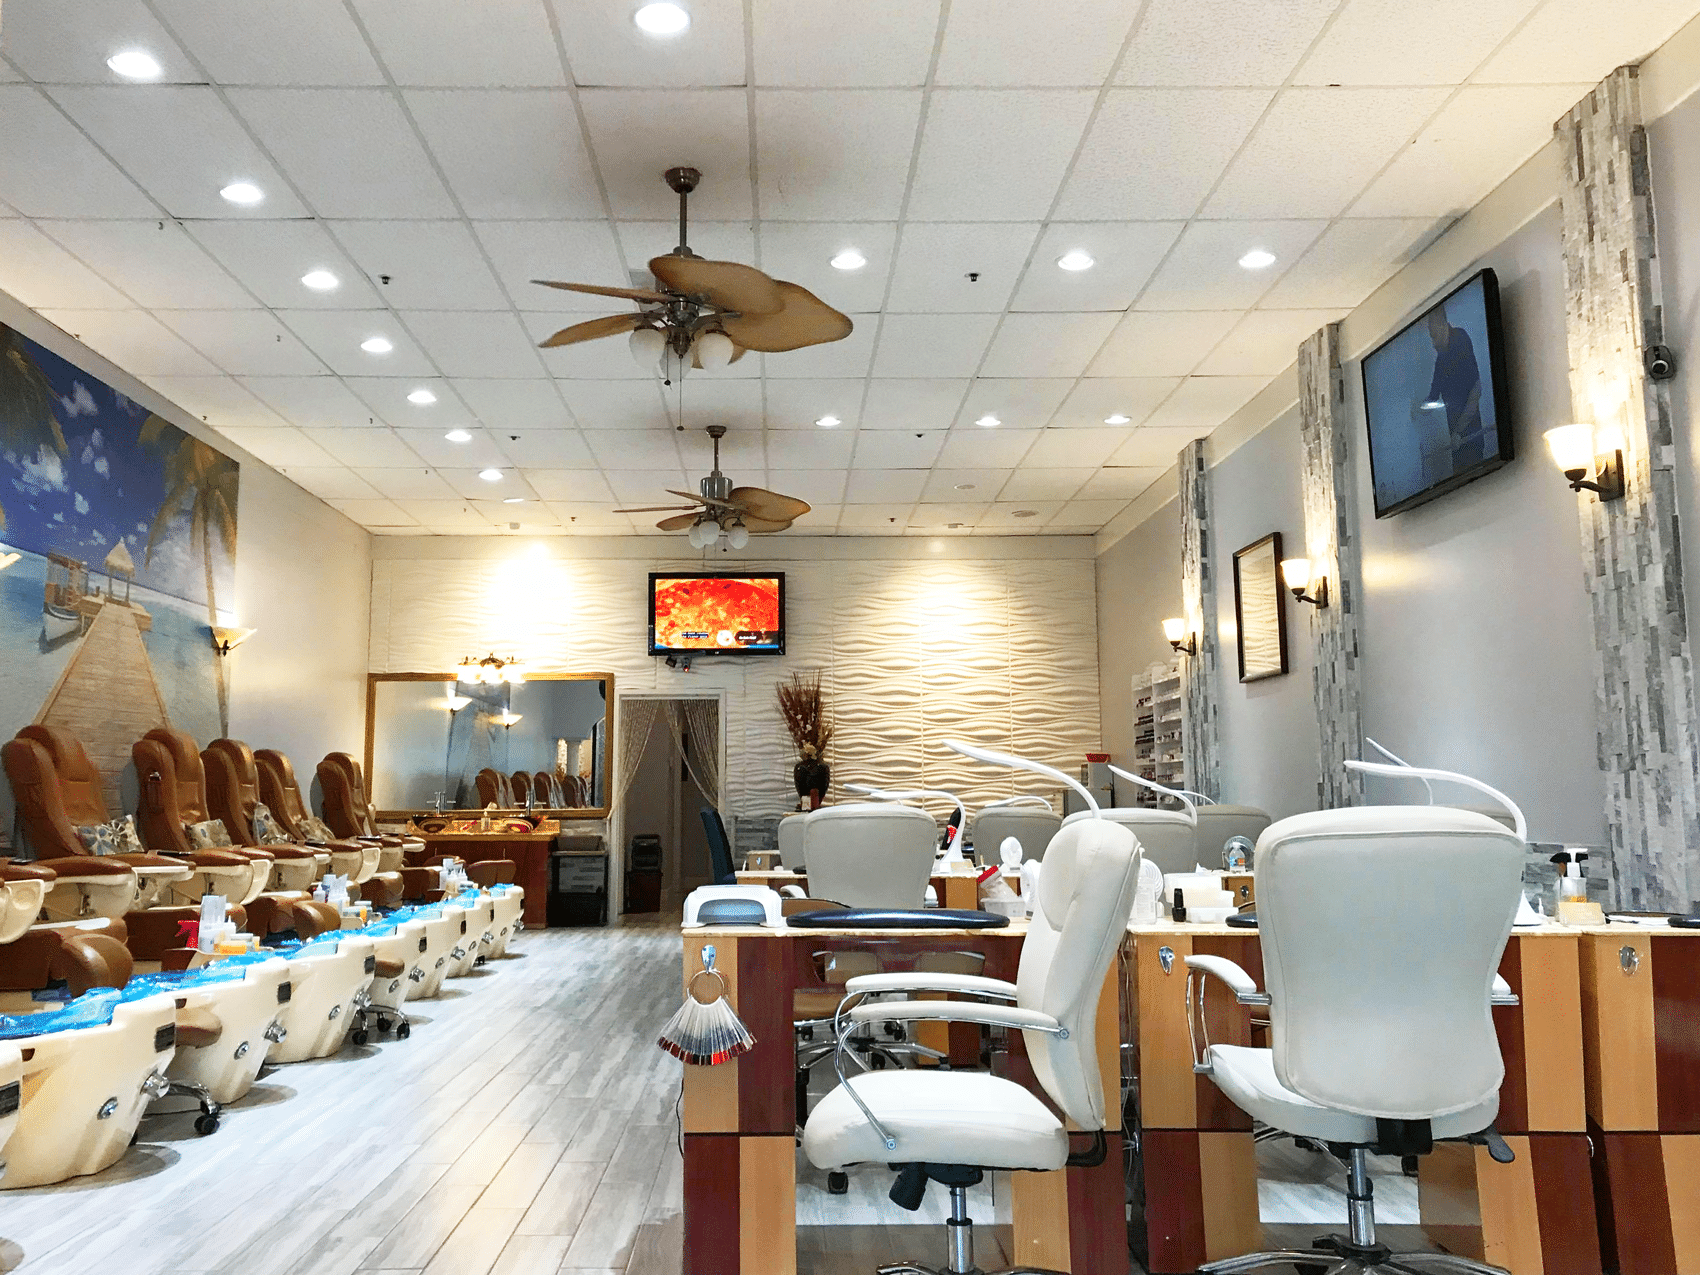 Are You Looking for a Better Nail Salon in Naples, Florida?